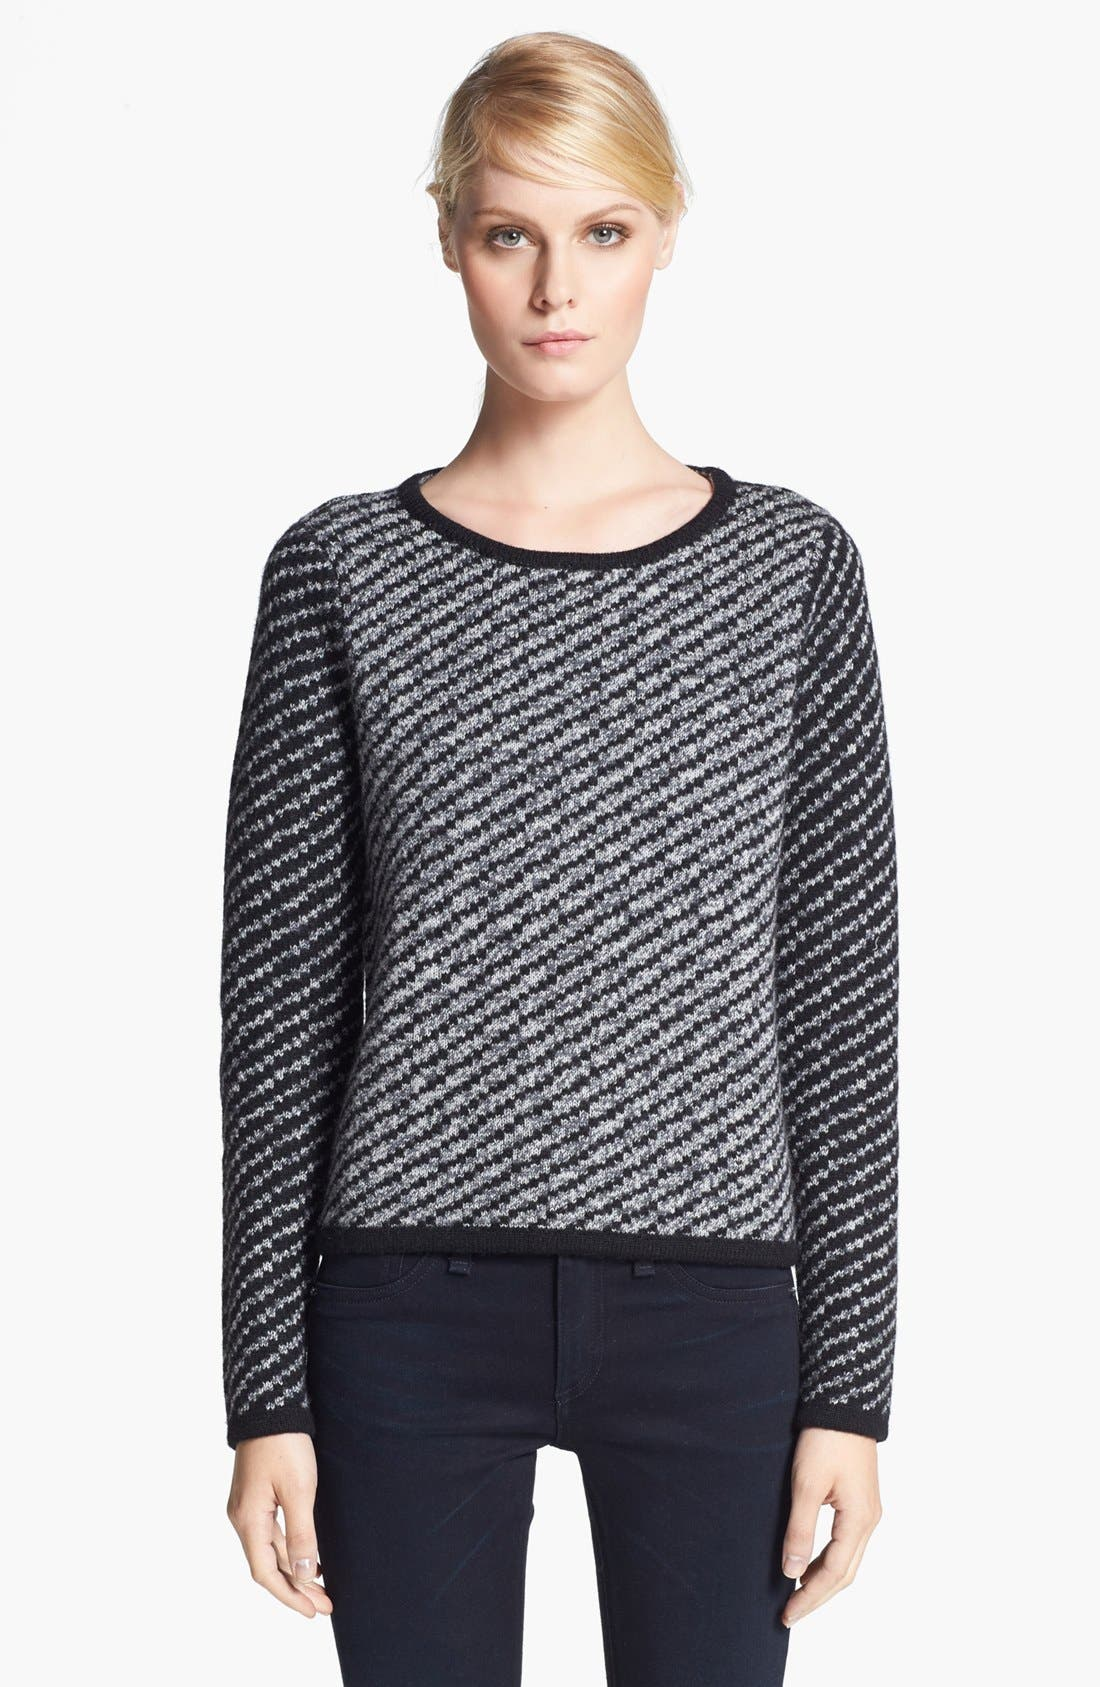 Main Image - rag & bone 'Ava' Sweater (Nordstrom Exclusive)